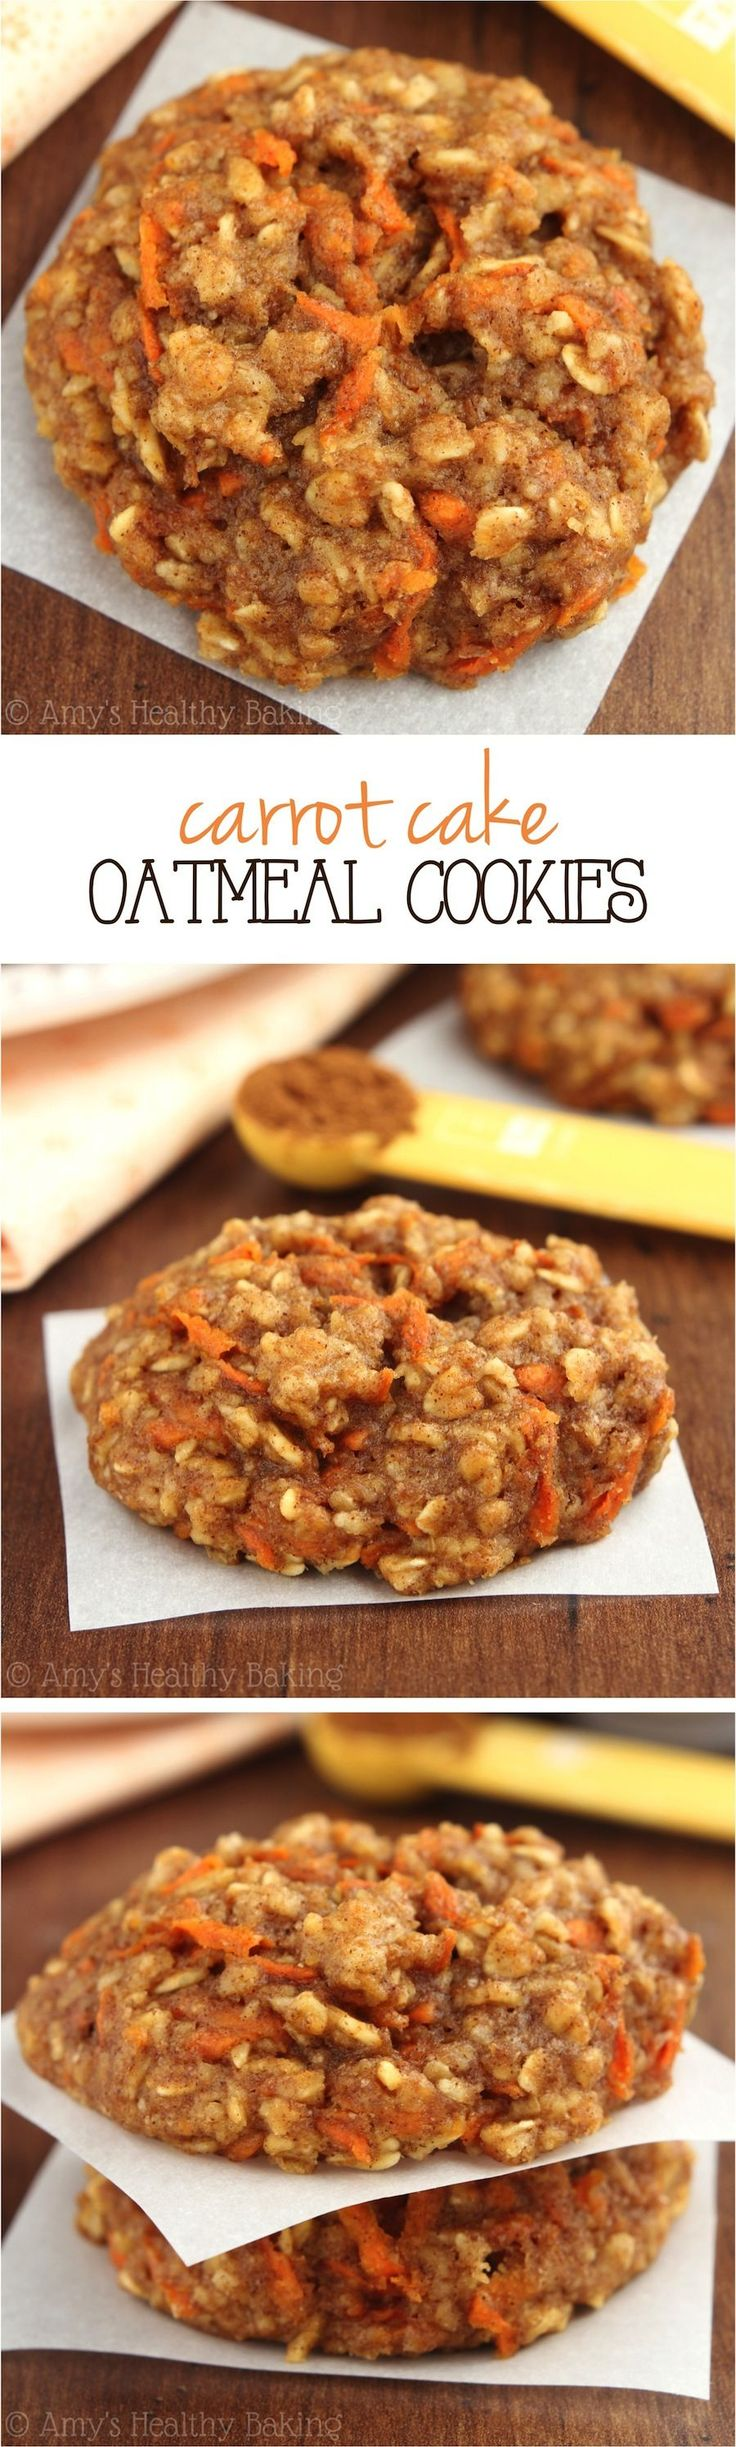 A healthier oatmeal cookie that tastes like carrot cake!